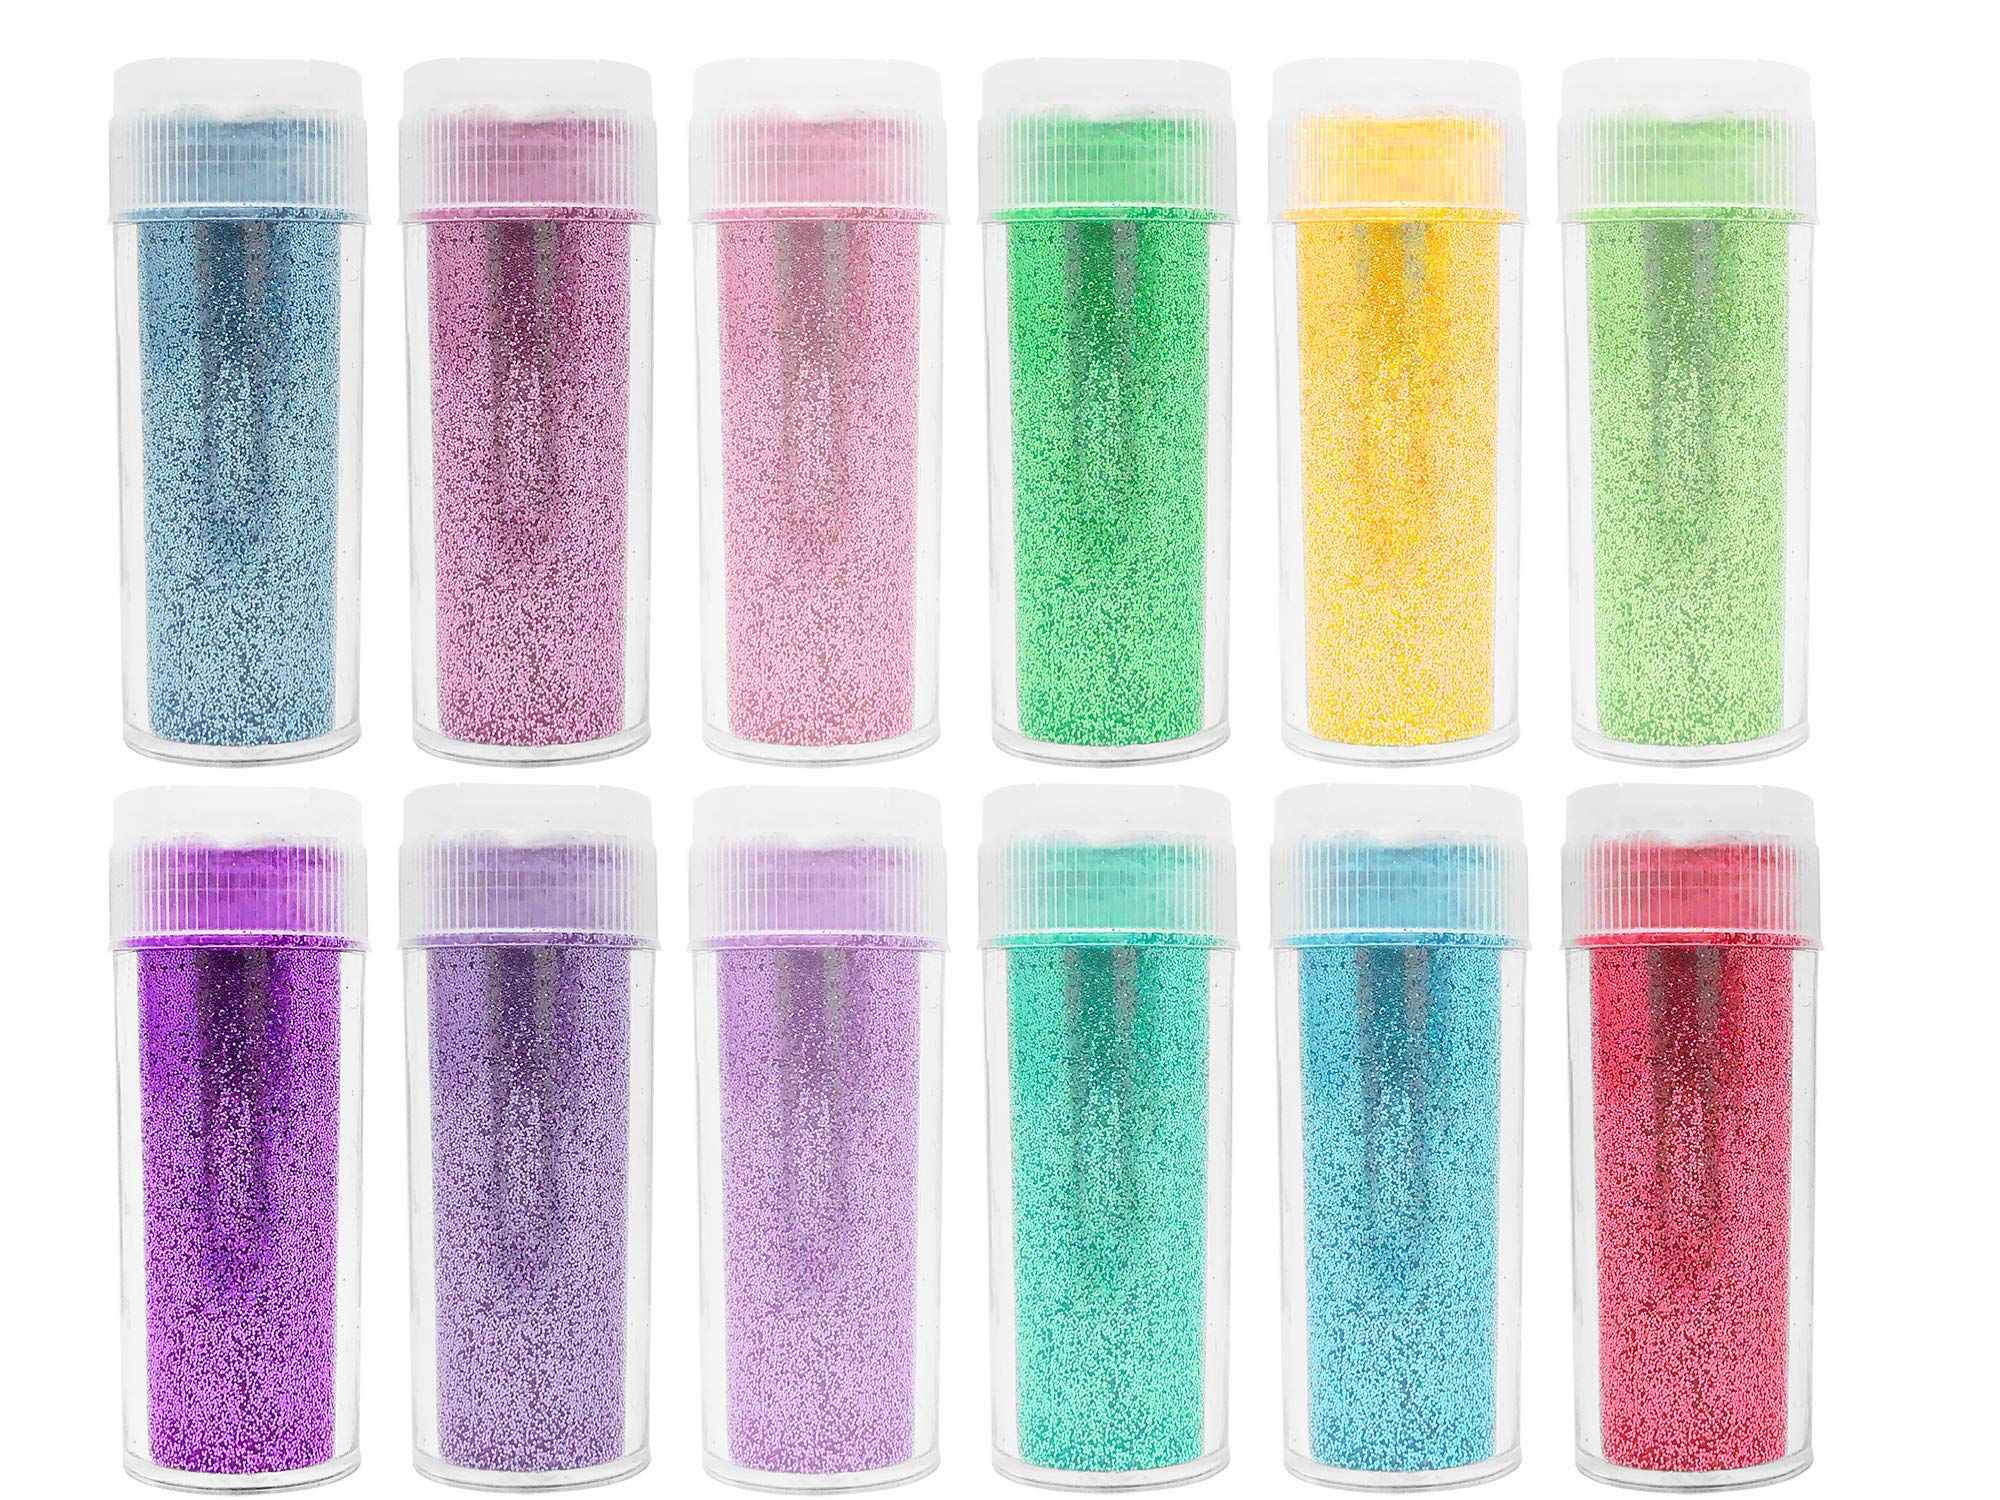 Epoxy Glitter Tumblers Kit, Includes Amazing Clear Cast Epoxy for Tumblers, Silicone Epoxy Resin Brushes, Glitter, Mod Podge by GRAS Art Bundles (Image #8)